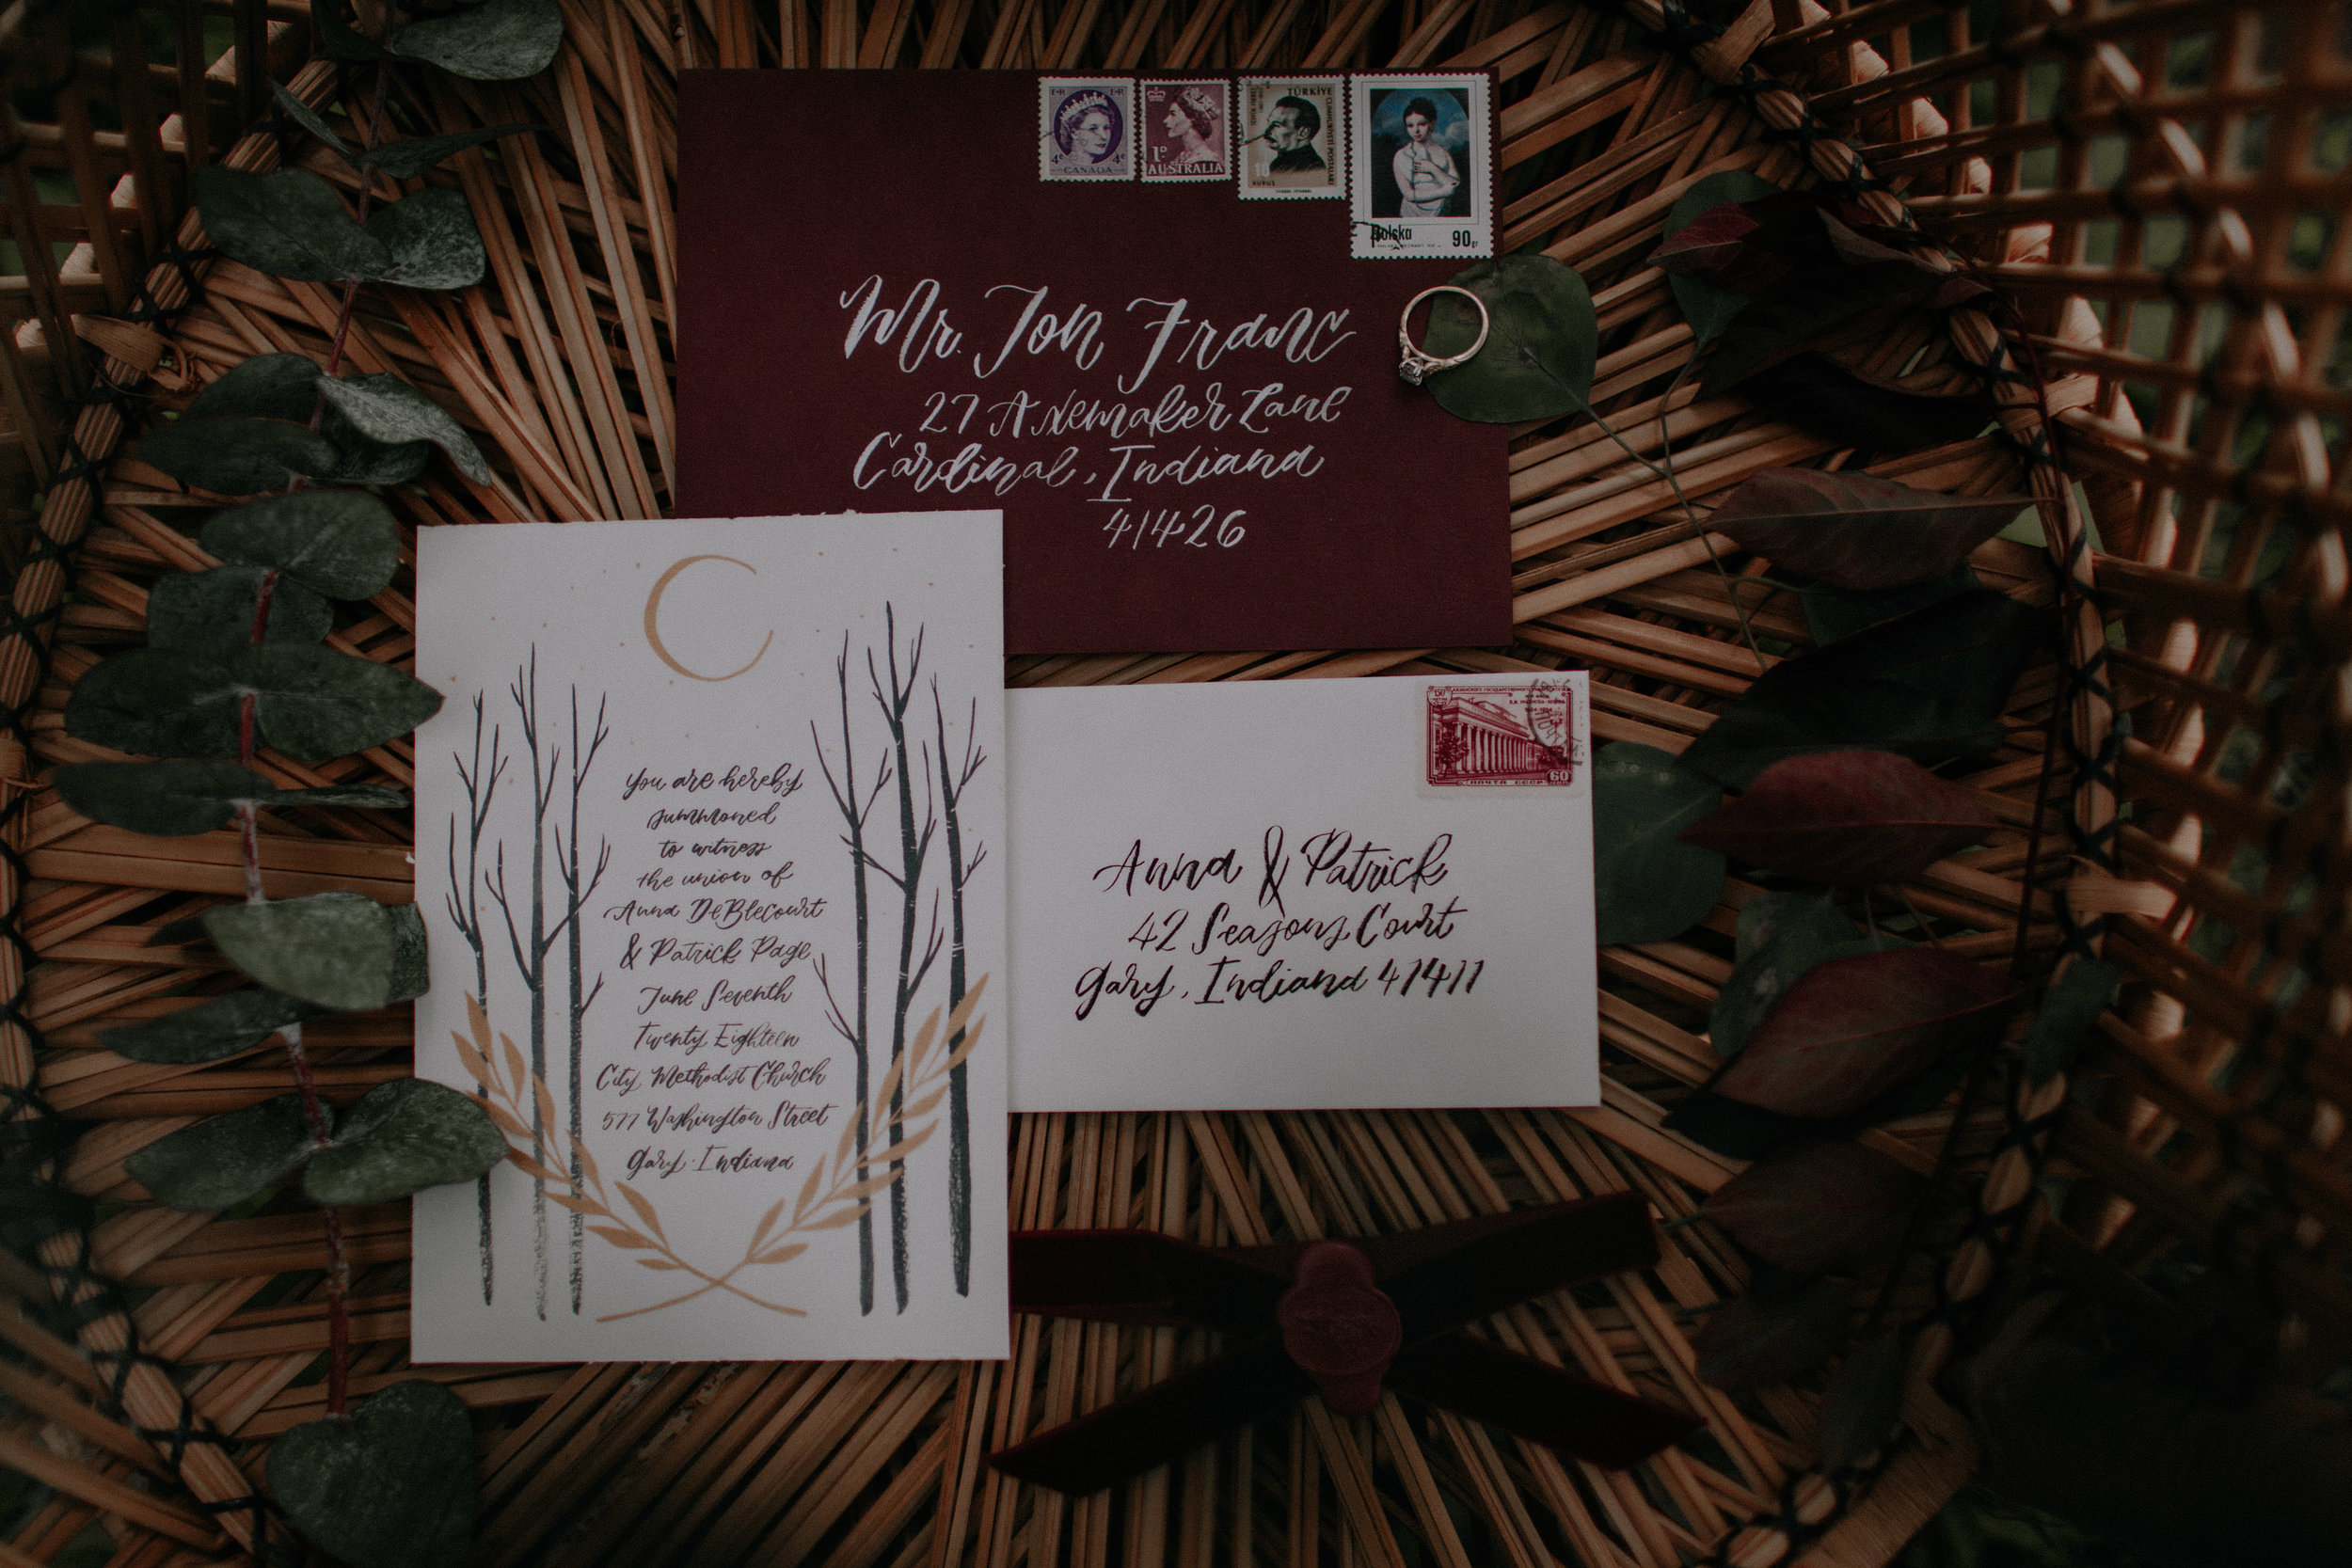 Maroon Wedding Invitation Game of Thrones for Chicago Elopement